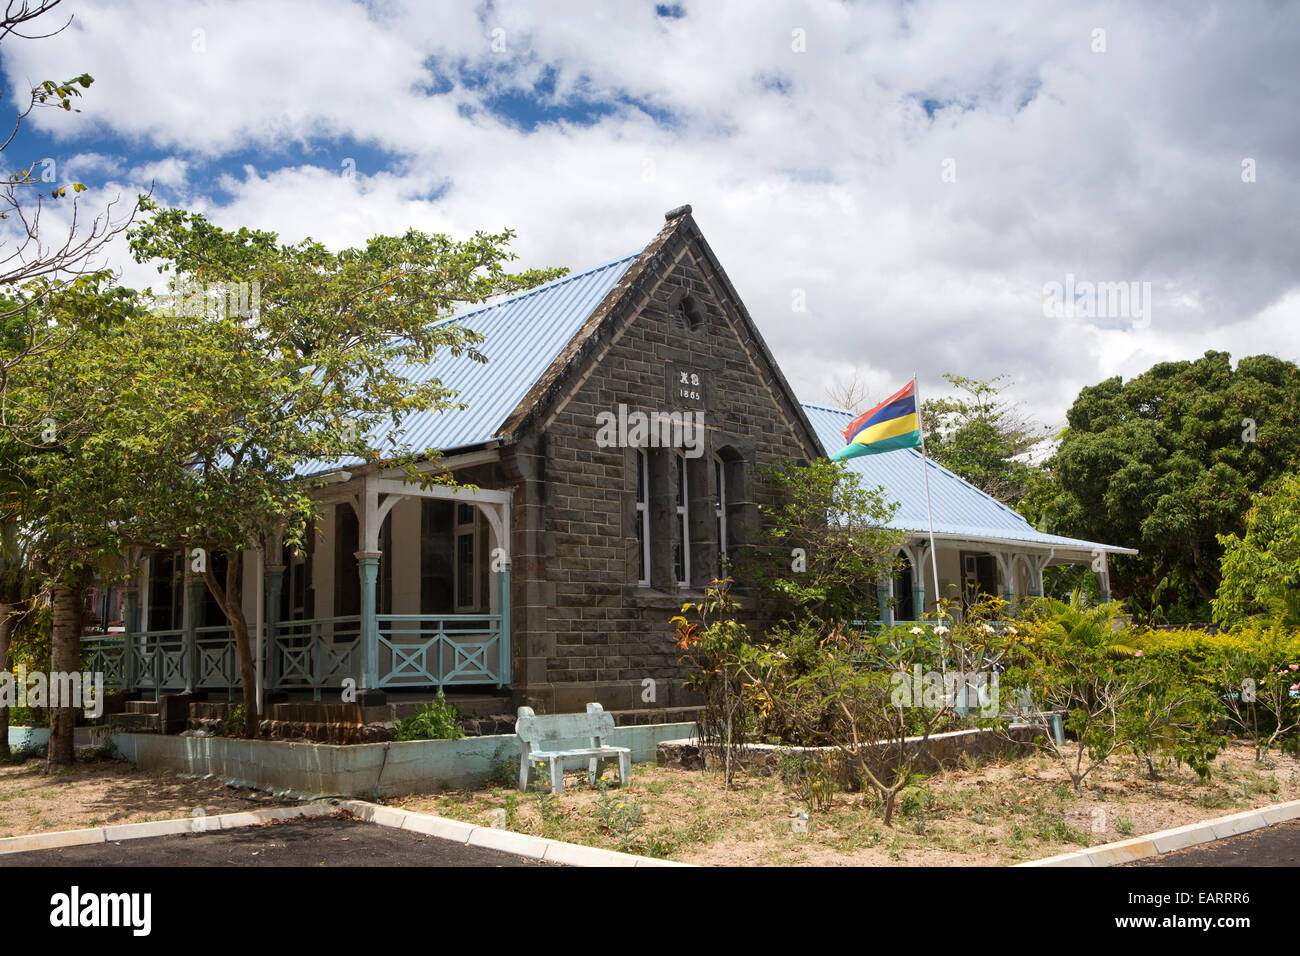 Mauritius, Grand Baie, Public Library In Old British Colonial Era Building    Stock Image